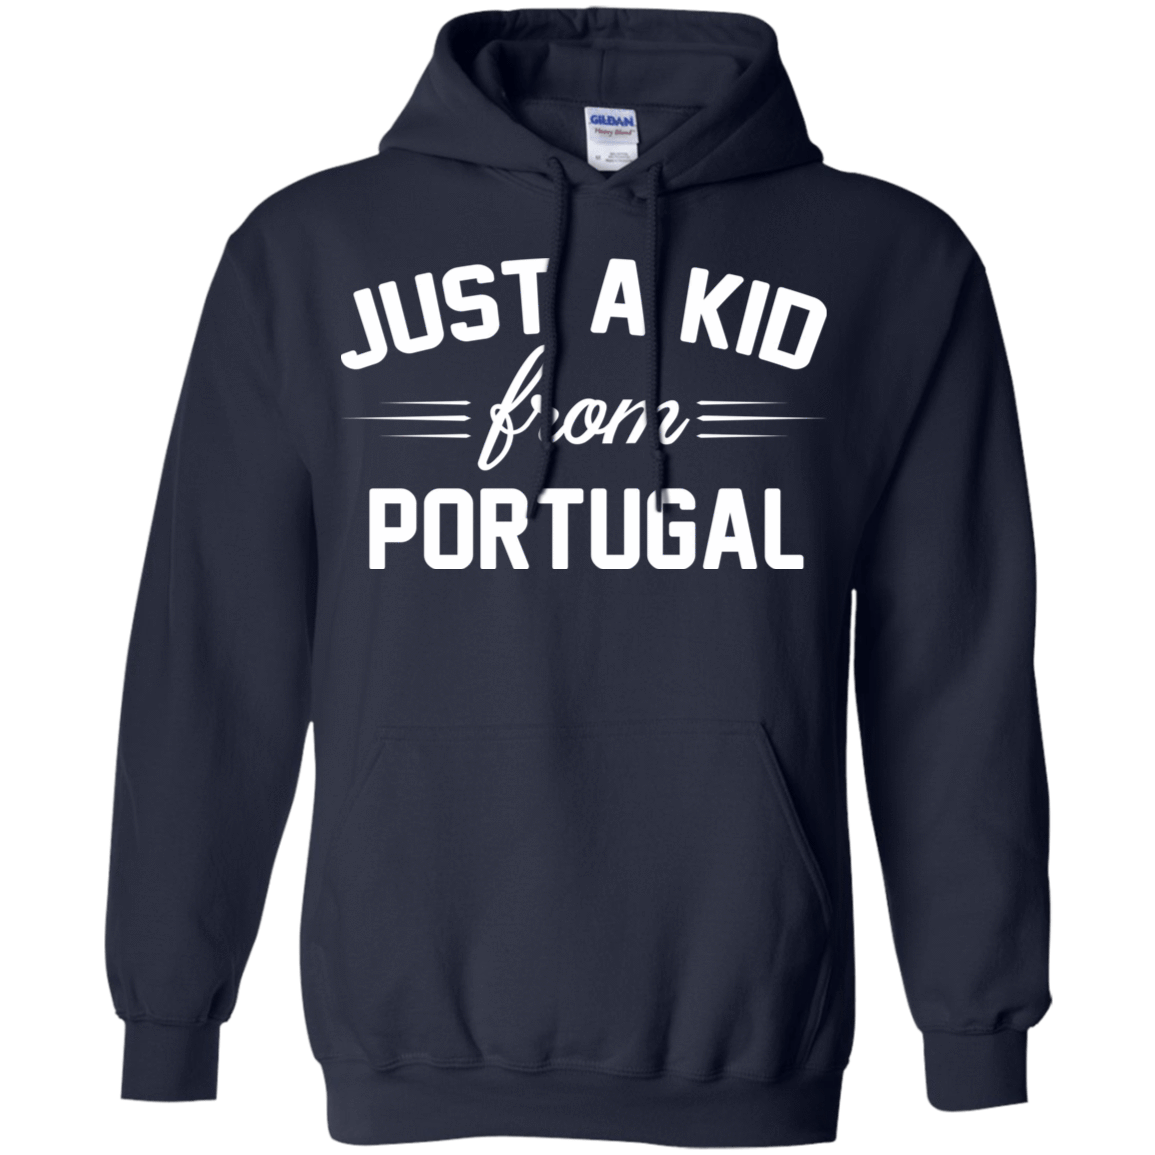 Just a Kid Store | Portugal T-Shirts, Hoodie, Tank 541-4742-72090885-23135 - Tee Ript